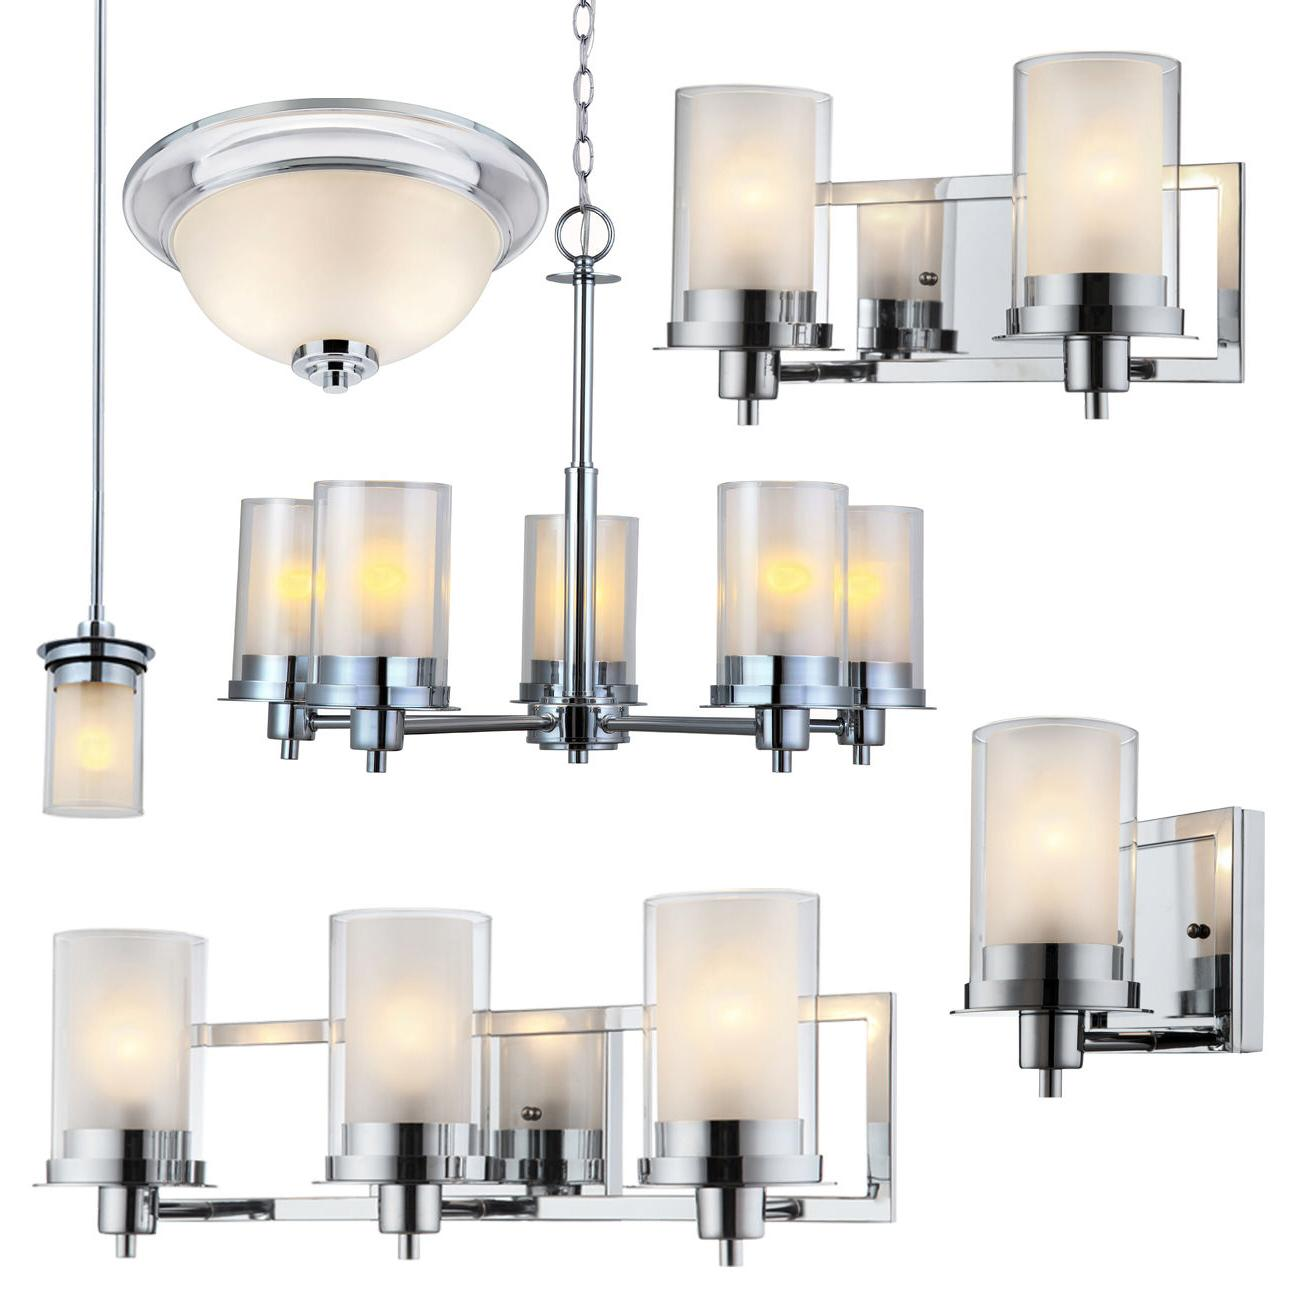 avalon polished chrome bathroom vanity ceiling lights